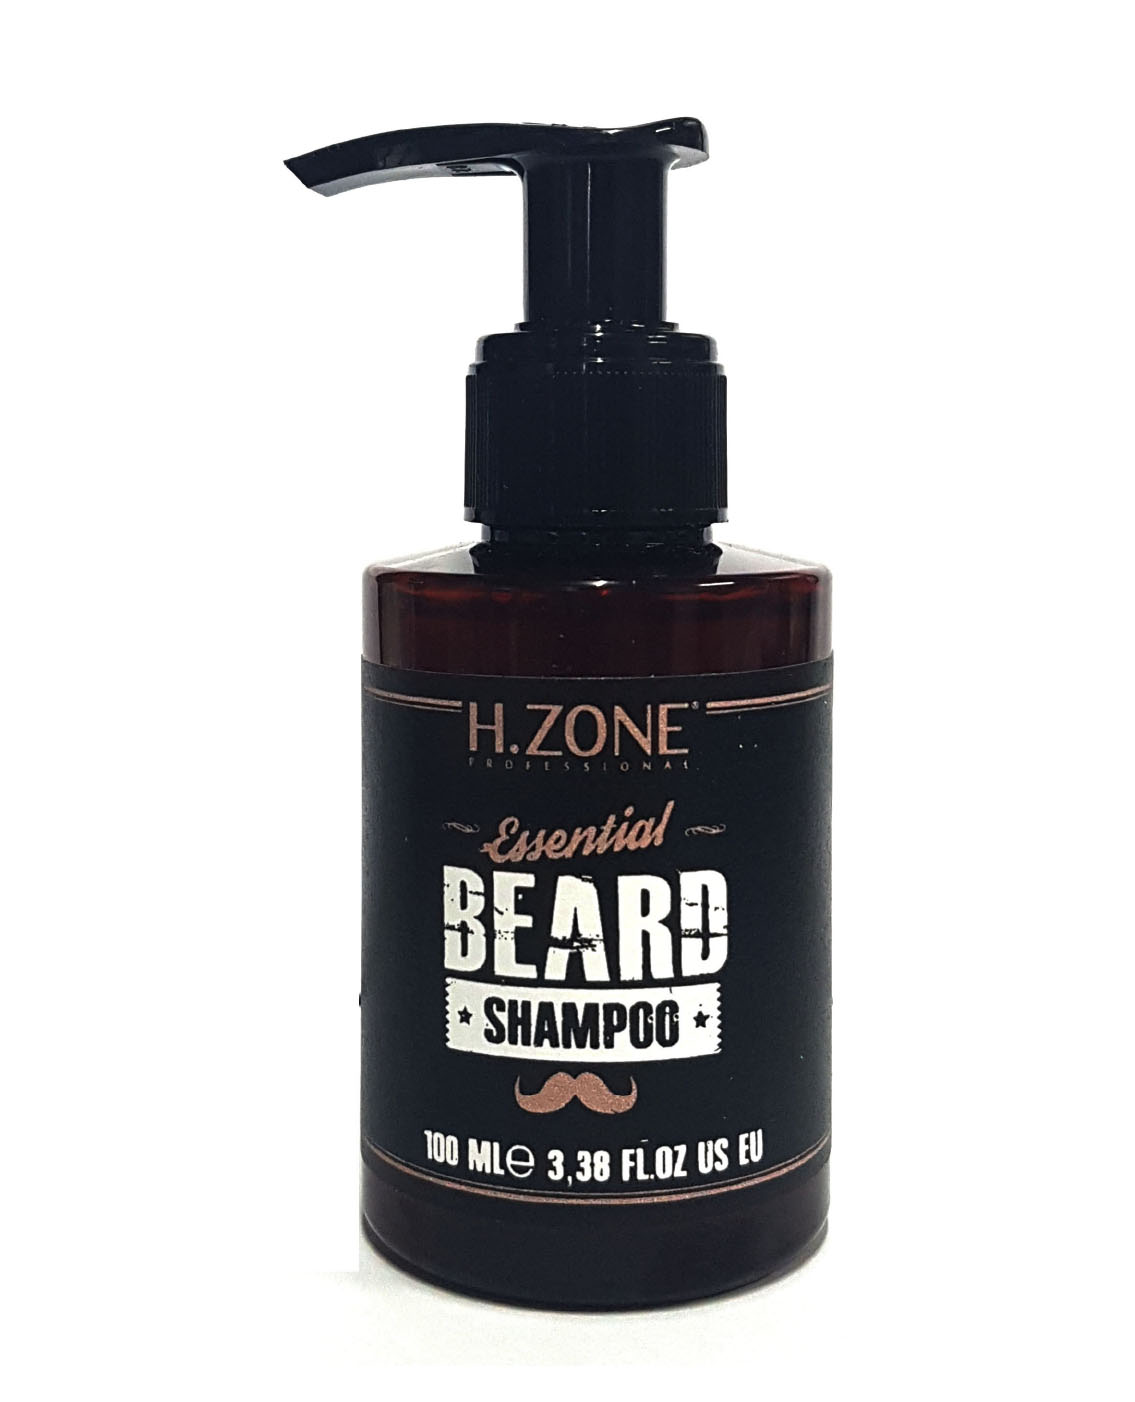 Hzone Essential Beard Shampoo 100ml